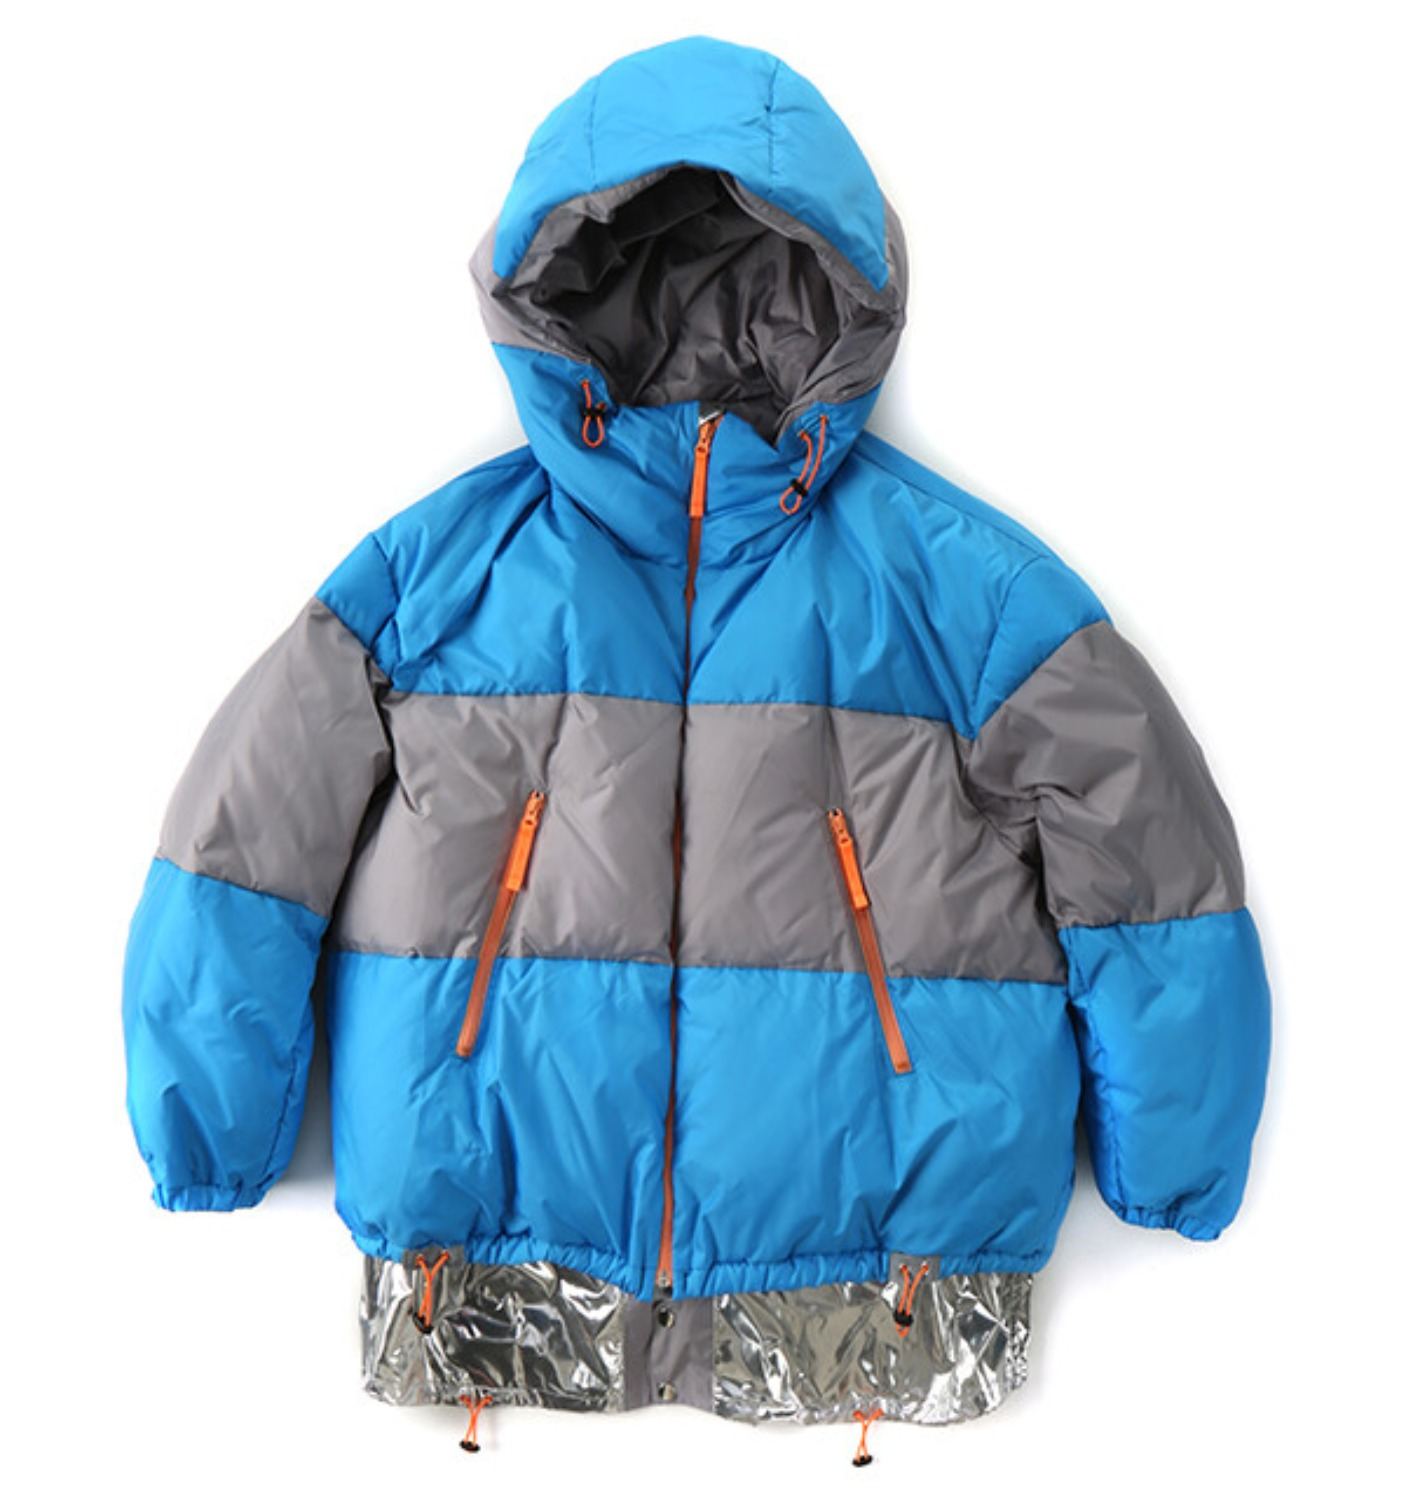 19WBM-G03134 HOODED DOWN PARKA